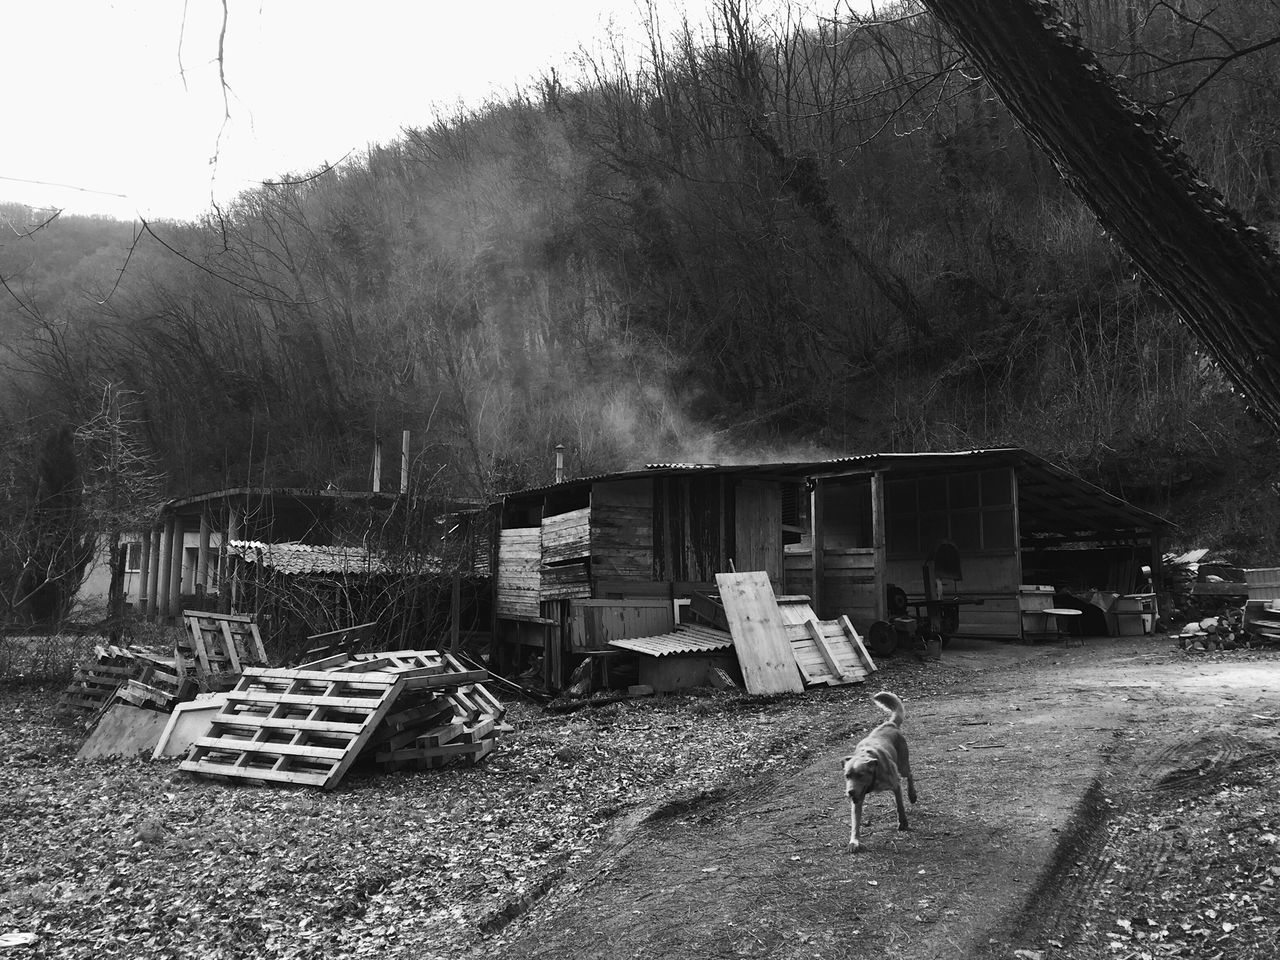 Old sawmill near Veternica cave, Dubravica, Gornji Stenjevec, Zagreb, Croatia, 2017. Veternica Gornji Stenjevec Zagreb Croatia Documentary Sawmill Tree Outdoors Built Structure Wood - Material Wood Forrest Architecture Domestic Animals Dog